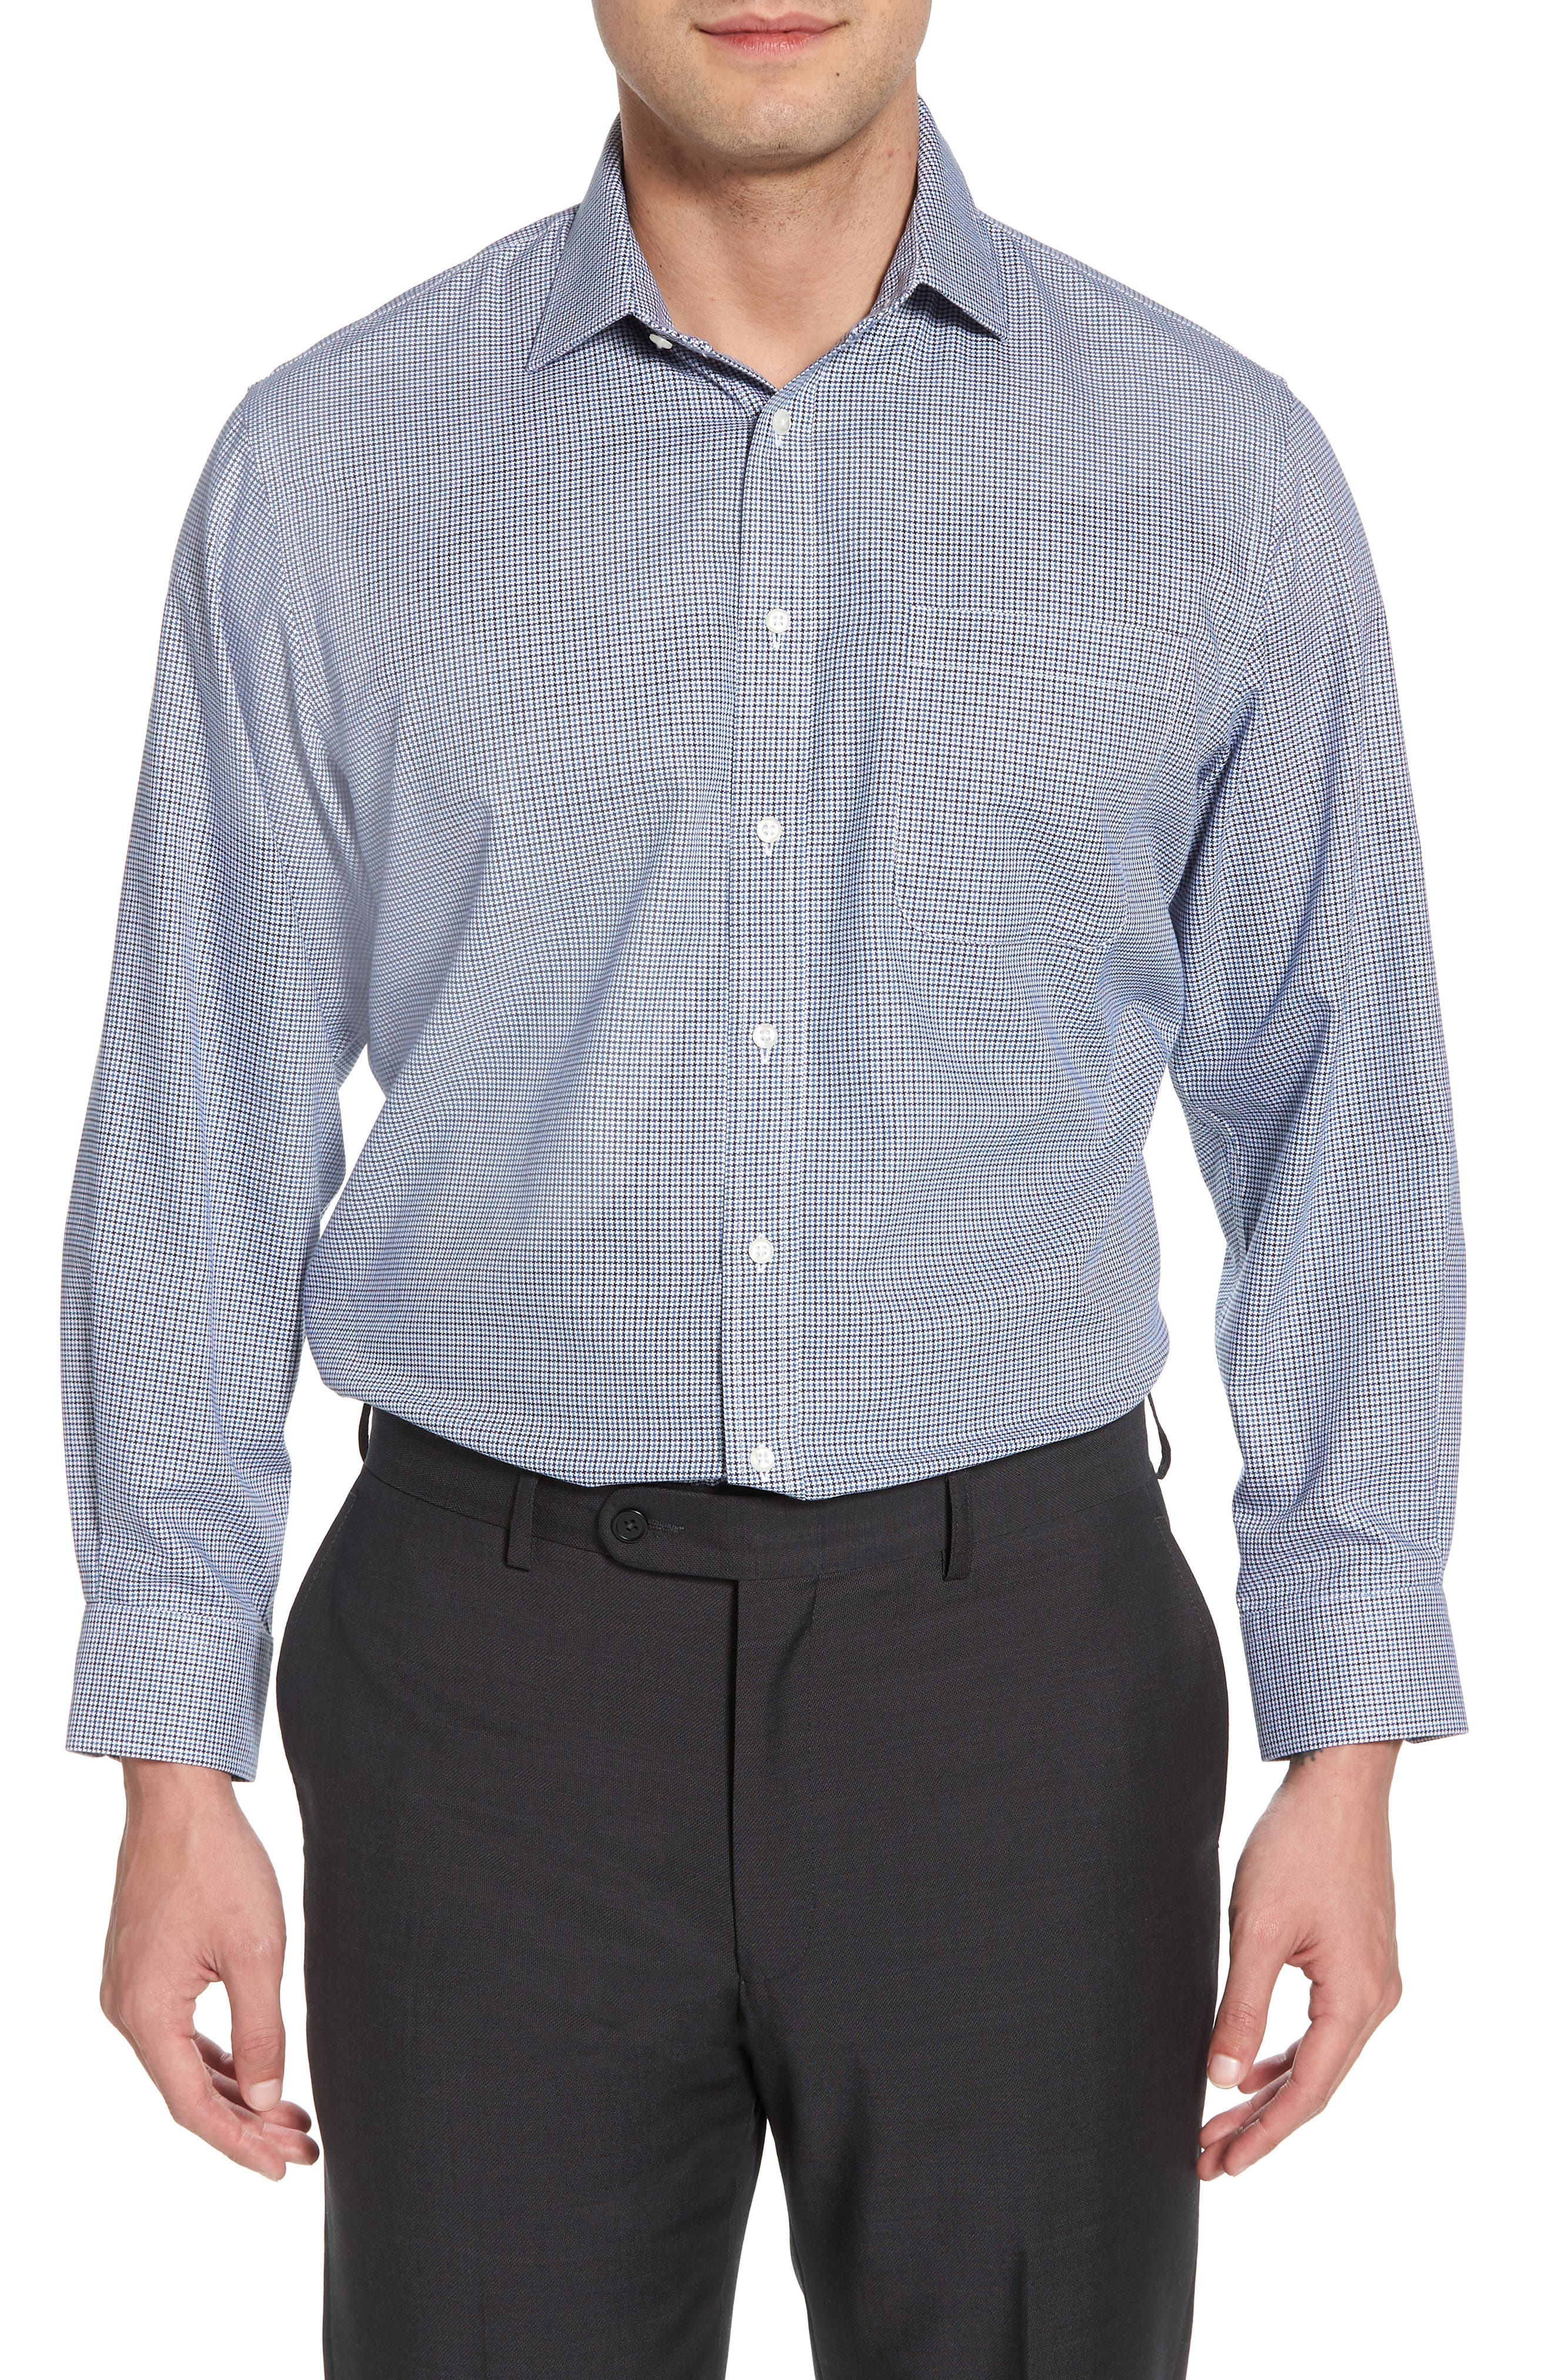 Smartcare<sup>™</sup> Traditional Fit Houndstooth Dress Shirt,                         Main,                         color, 410